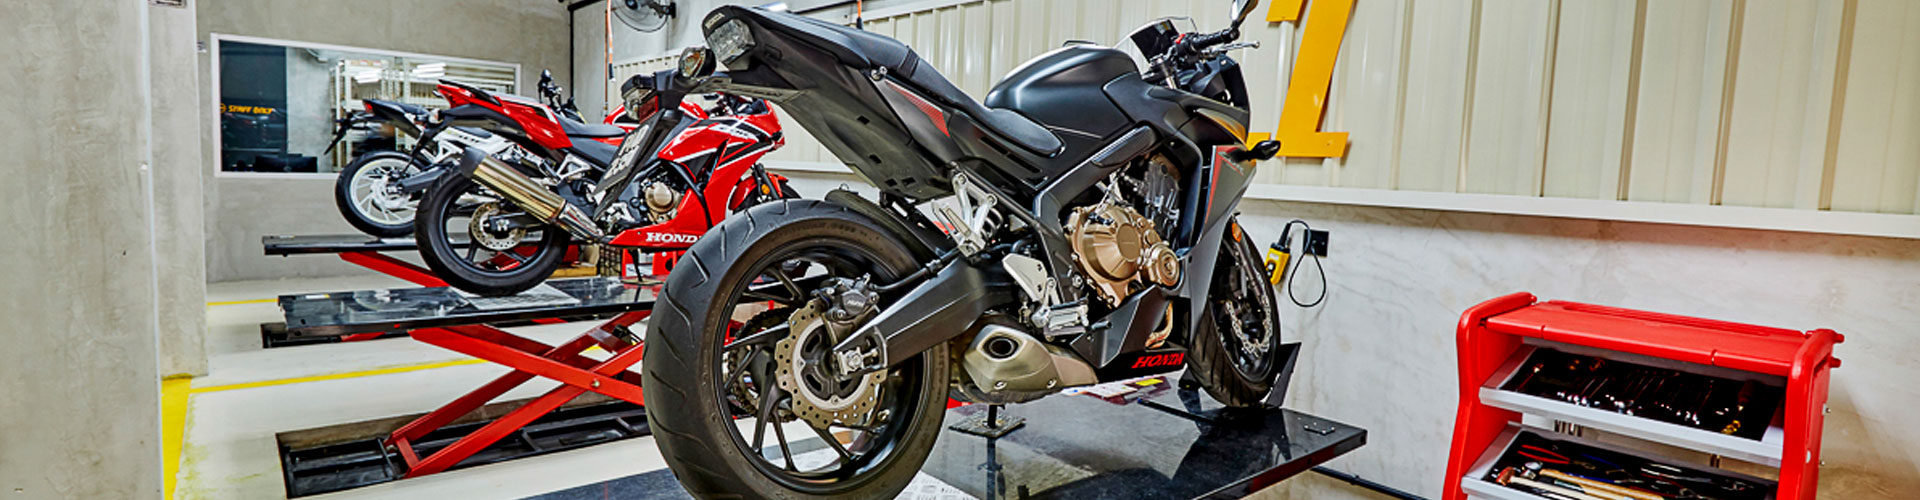 Honda Motorcycle Aftercare and Services